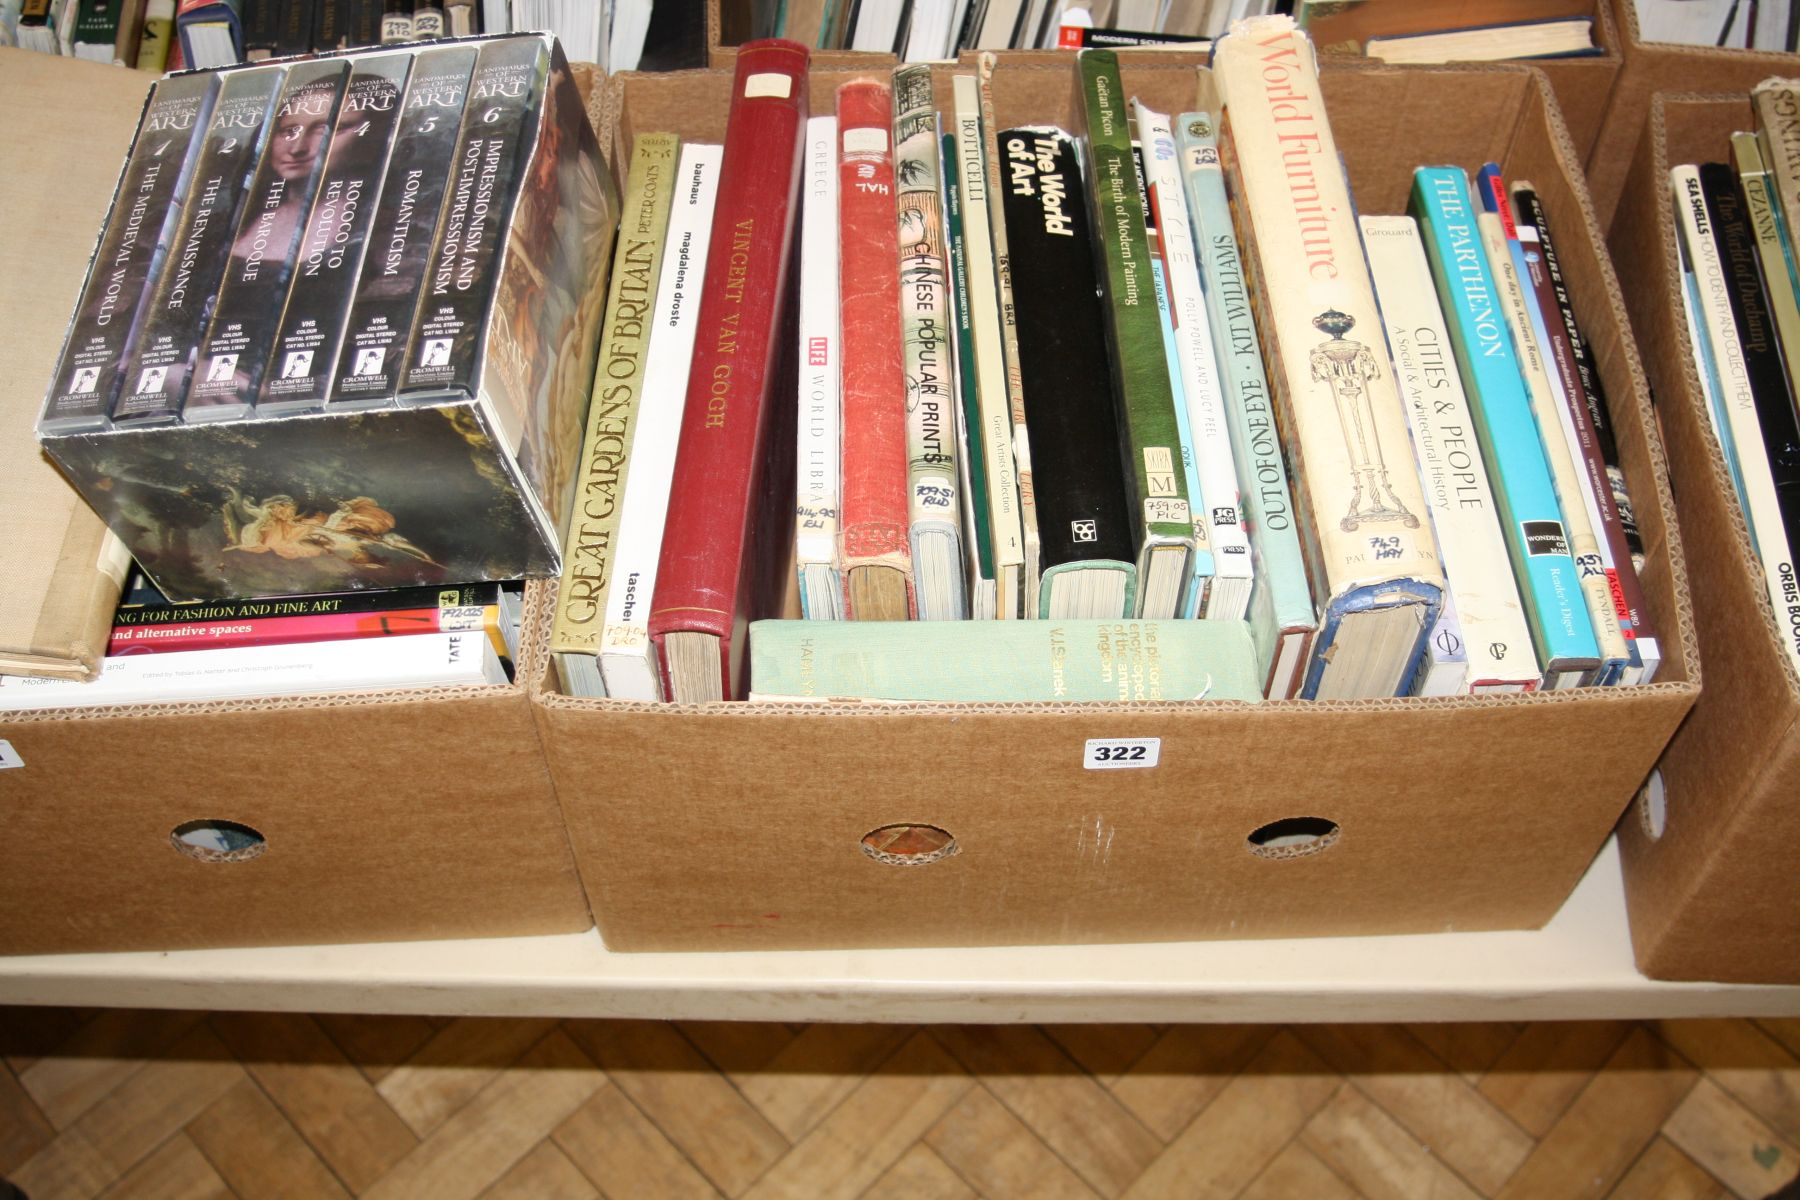 Lot 322 - A TRAY CONTAINING APPROXIMATELY TWENTY FIVE BOOKS AND A BOXSET OF VIDEOS, on Art and Artists